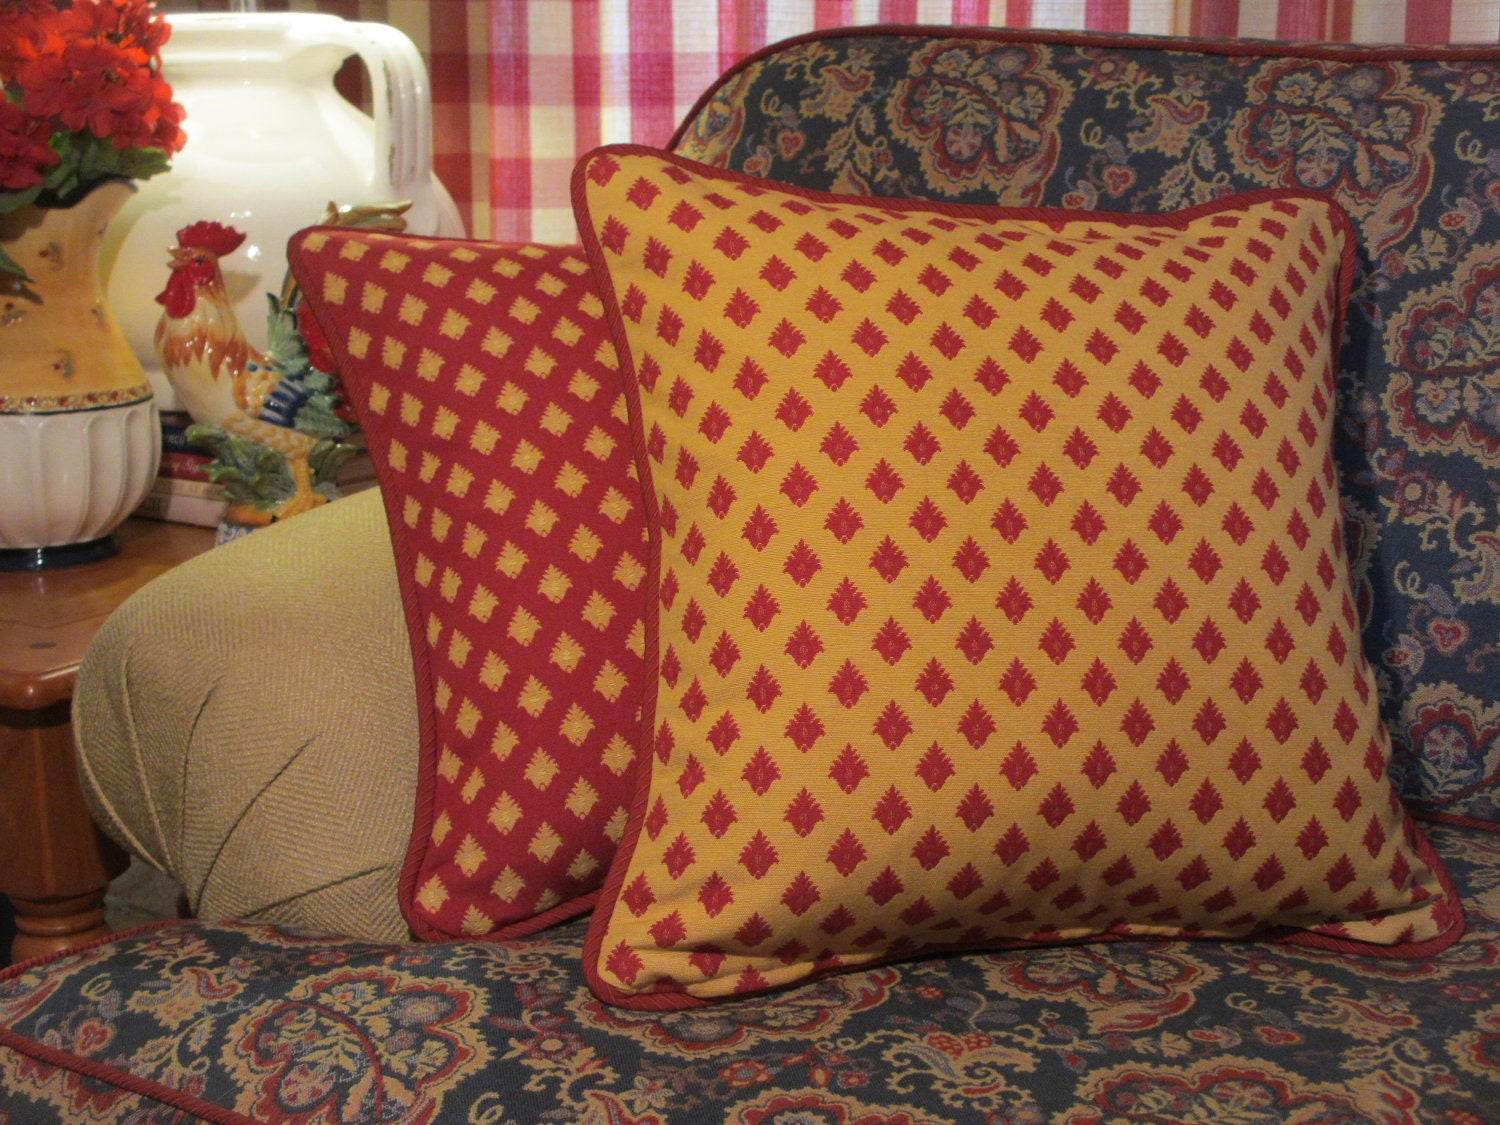 Yellow And Red Decorative Pillows : French Country Pillow Cover Red and Yellow Pillow Pompom